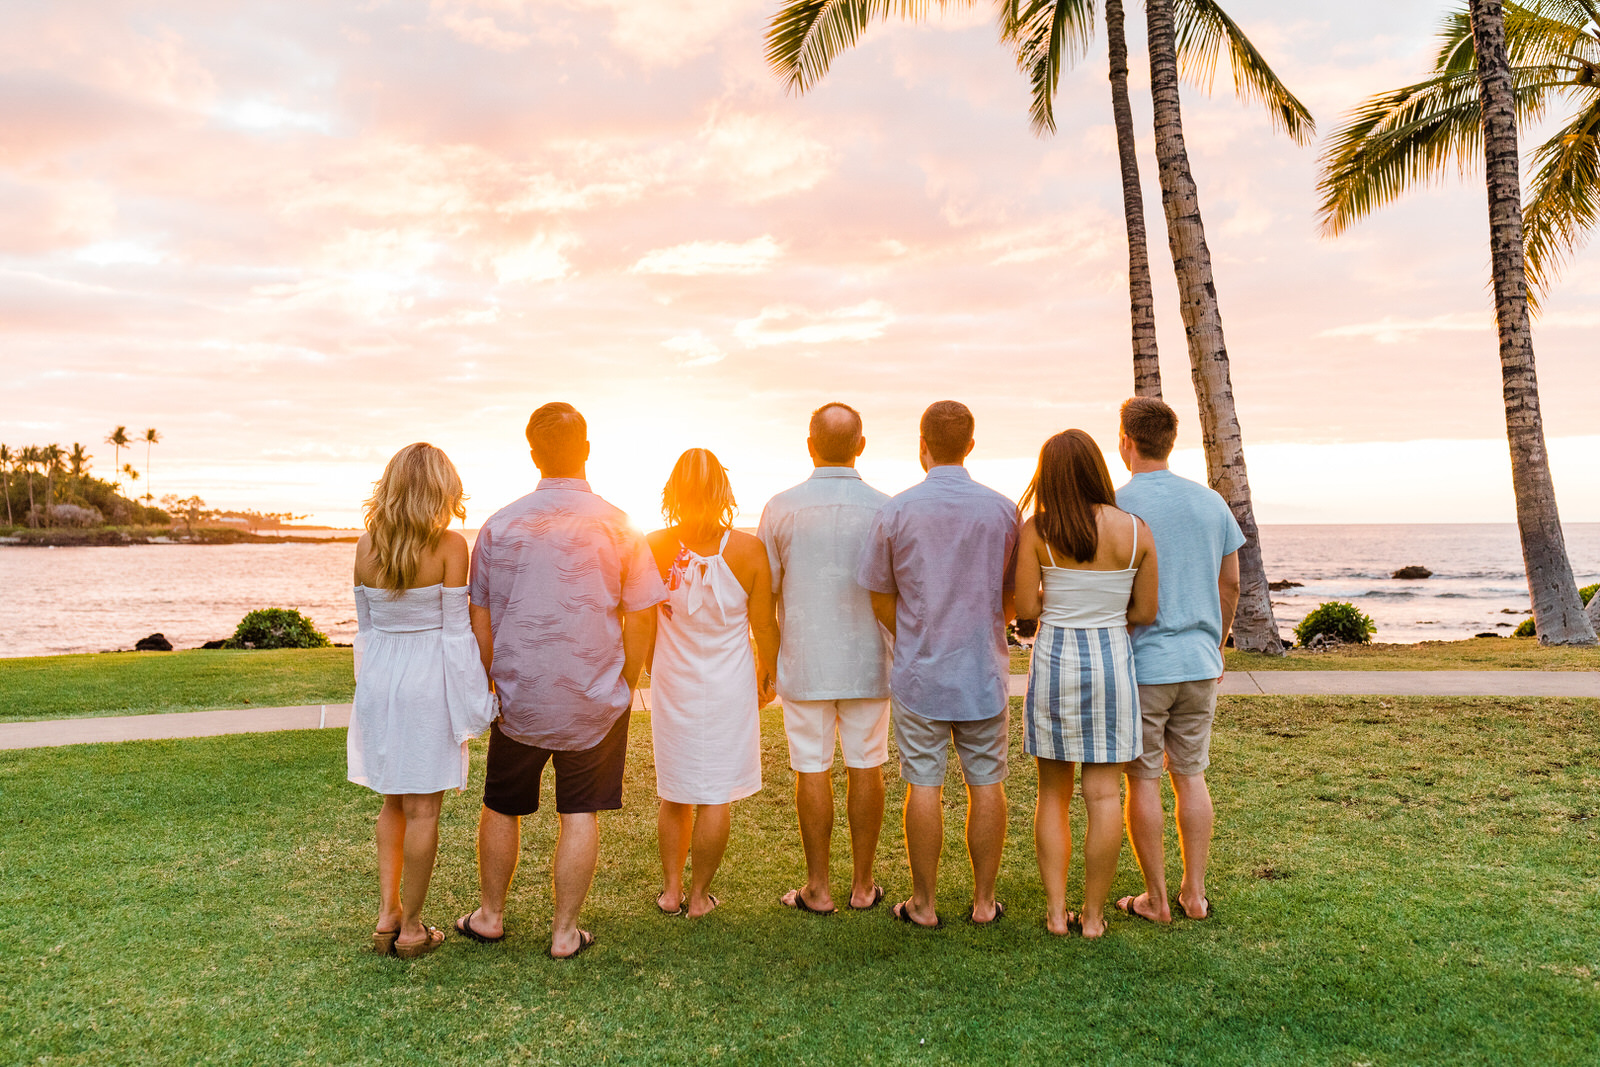 extended-family-vacation-waimea-sunset-17.jpg